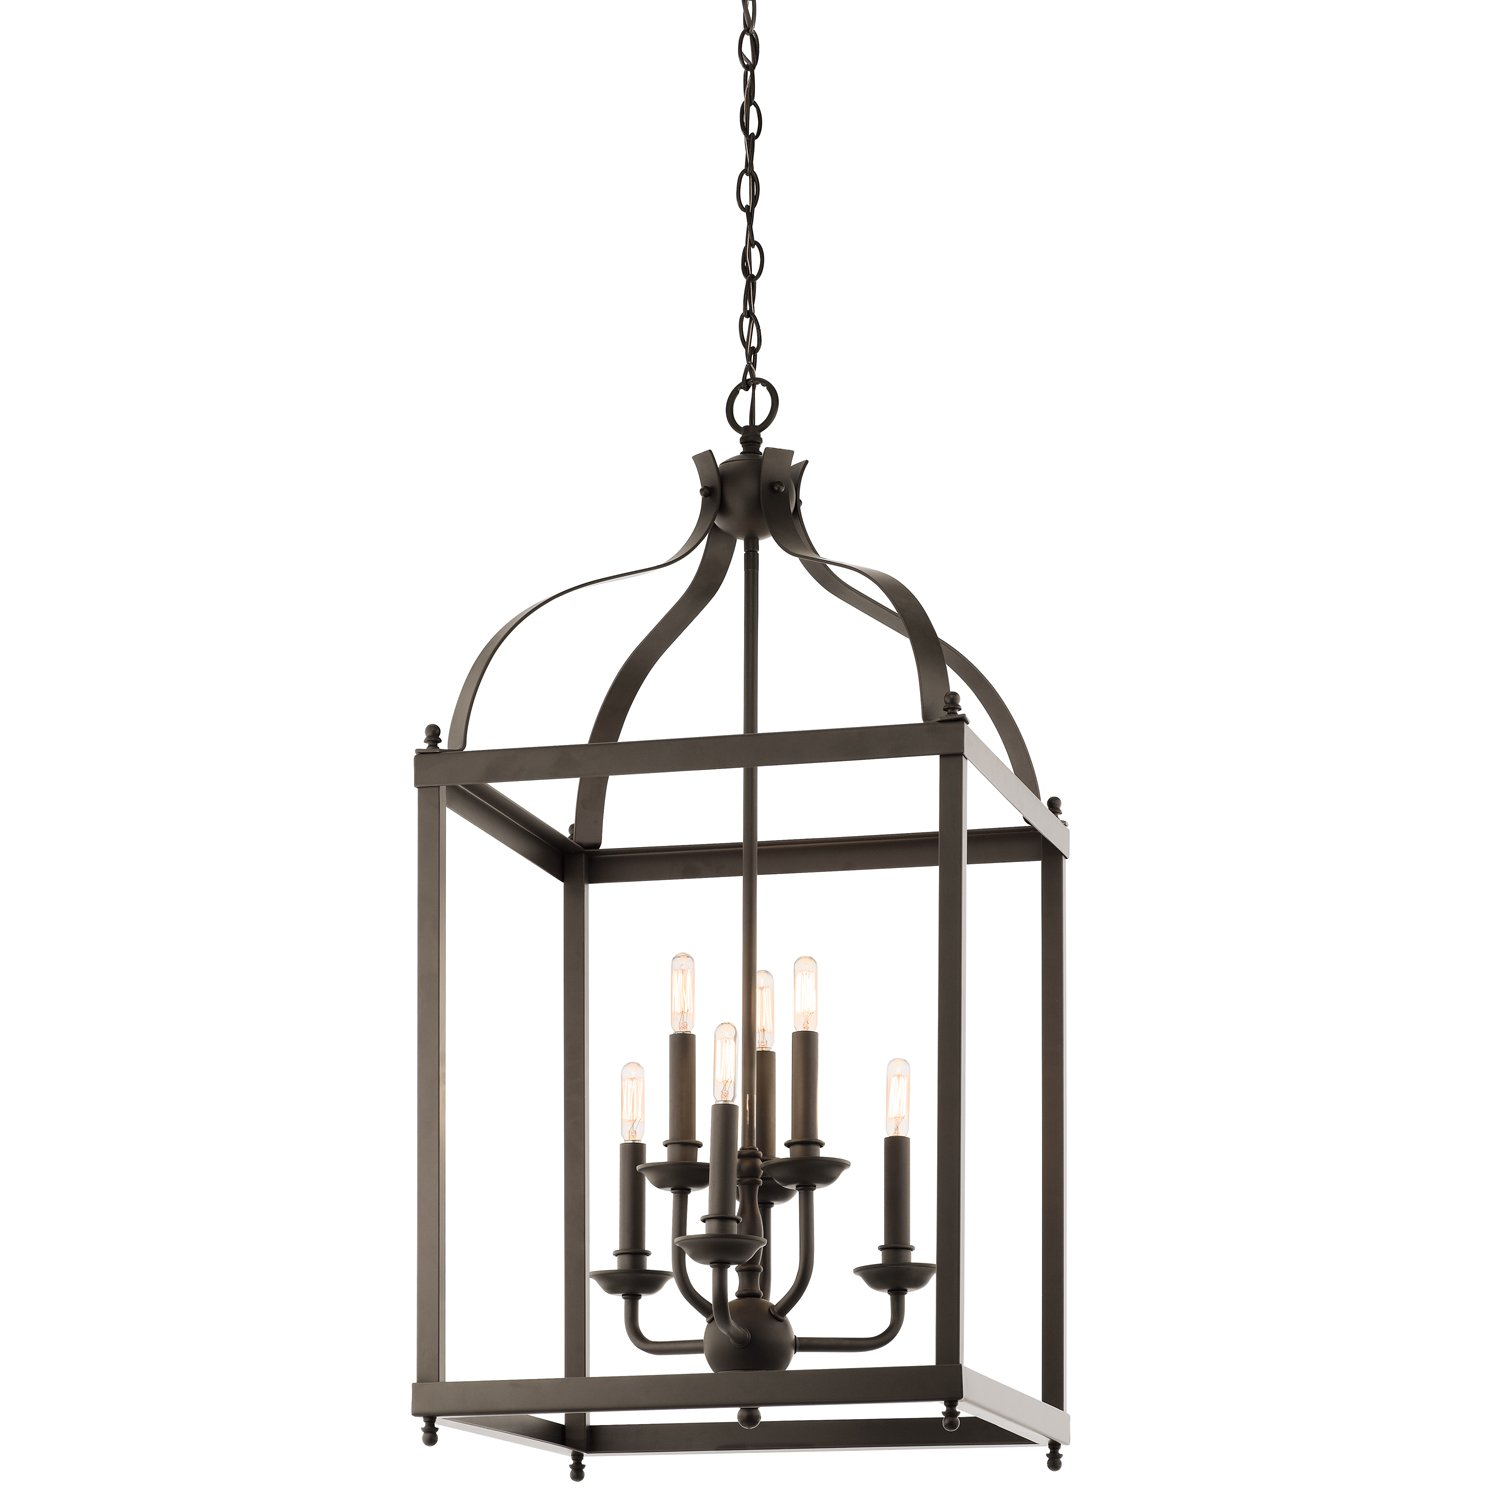 Kichler 42568oz larkin foyer chandelier 6 light olde bronze kichler 42568oz larkin foyer chandelier 6 light olde bronze ceiling pendant fixtures amazon aloadofball Images